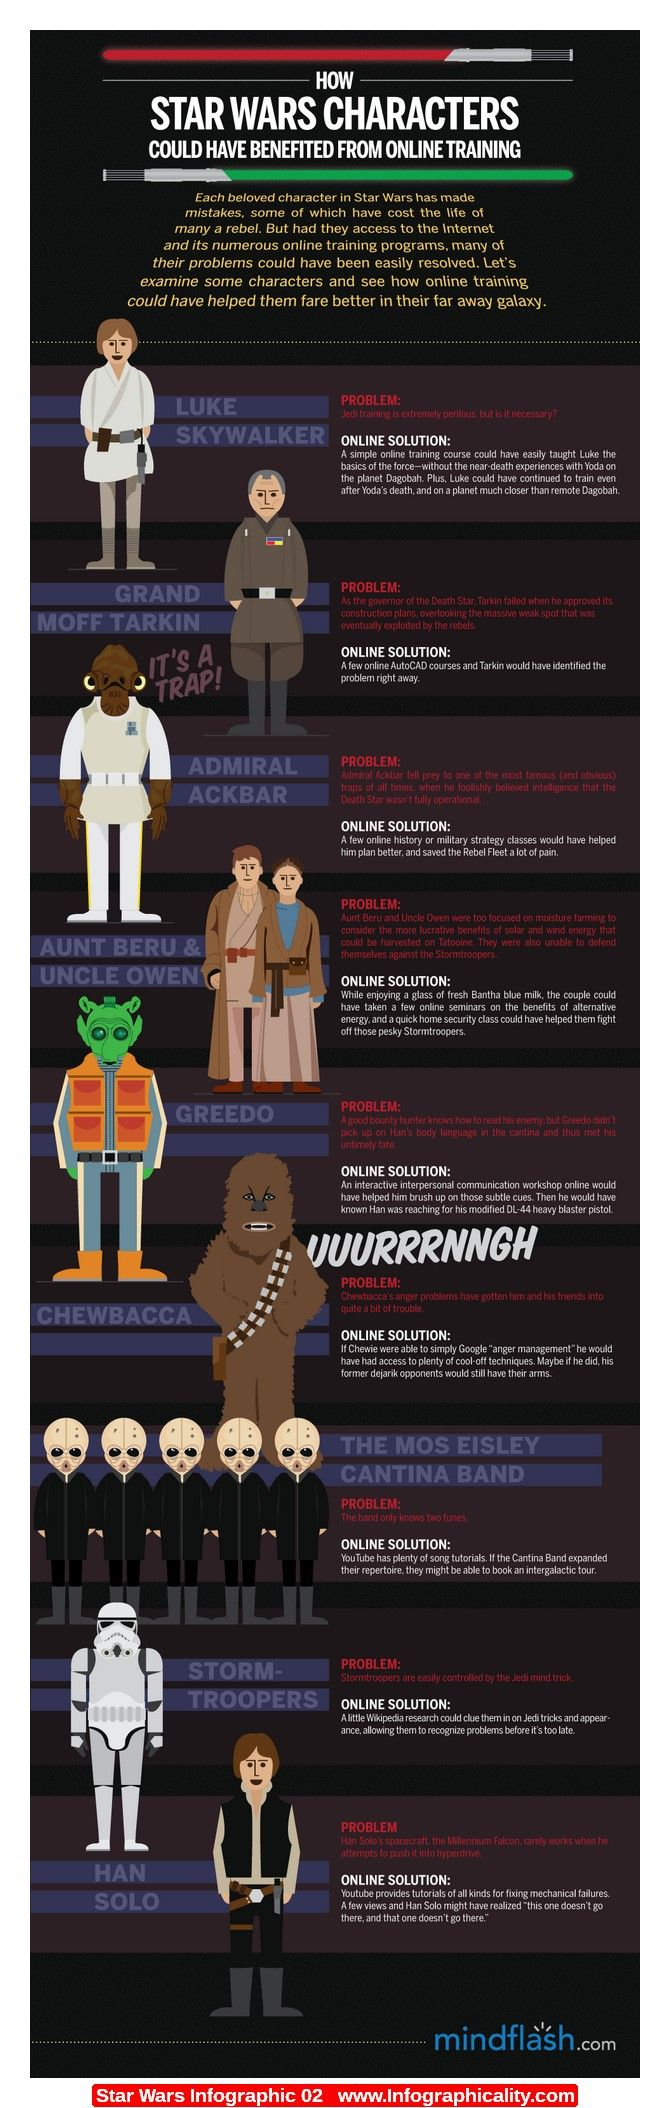 Star Wars Infographic, interesting way of disscussing the series with a different angle